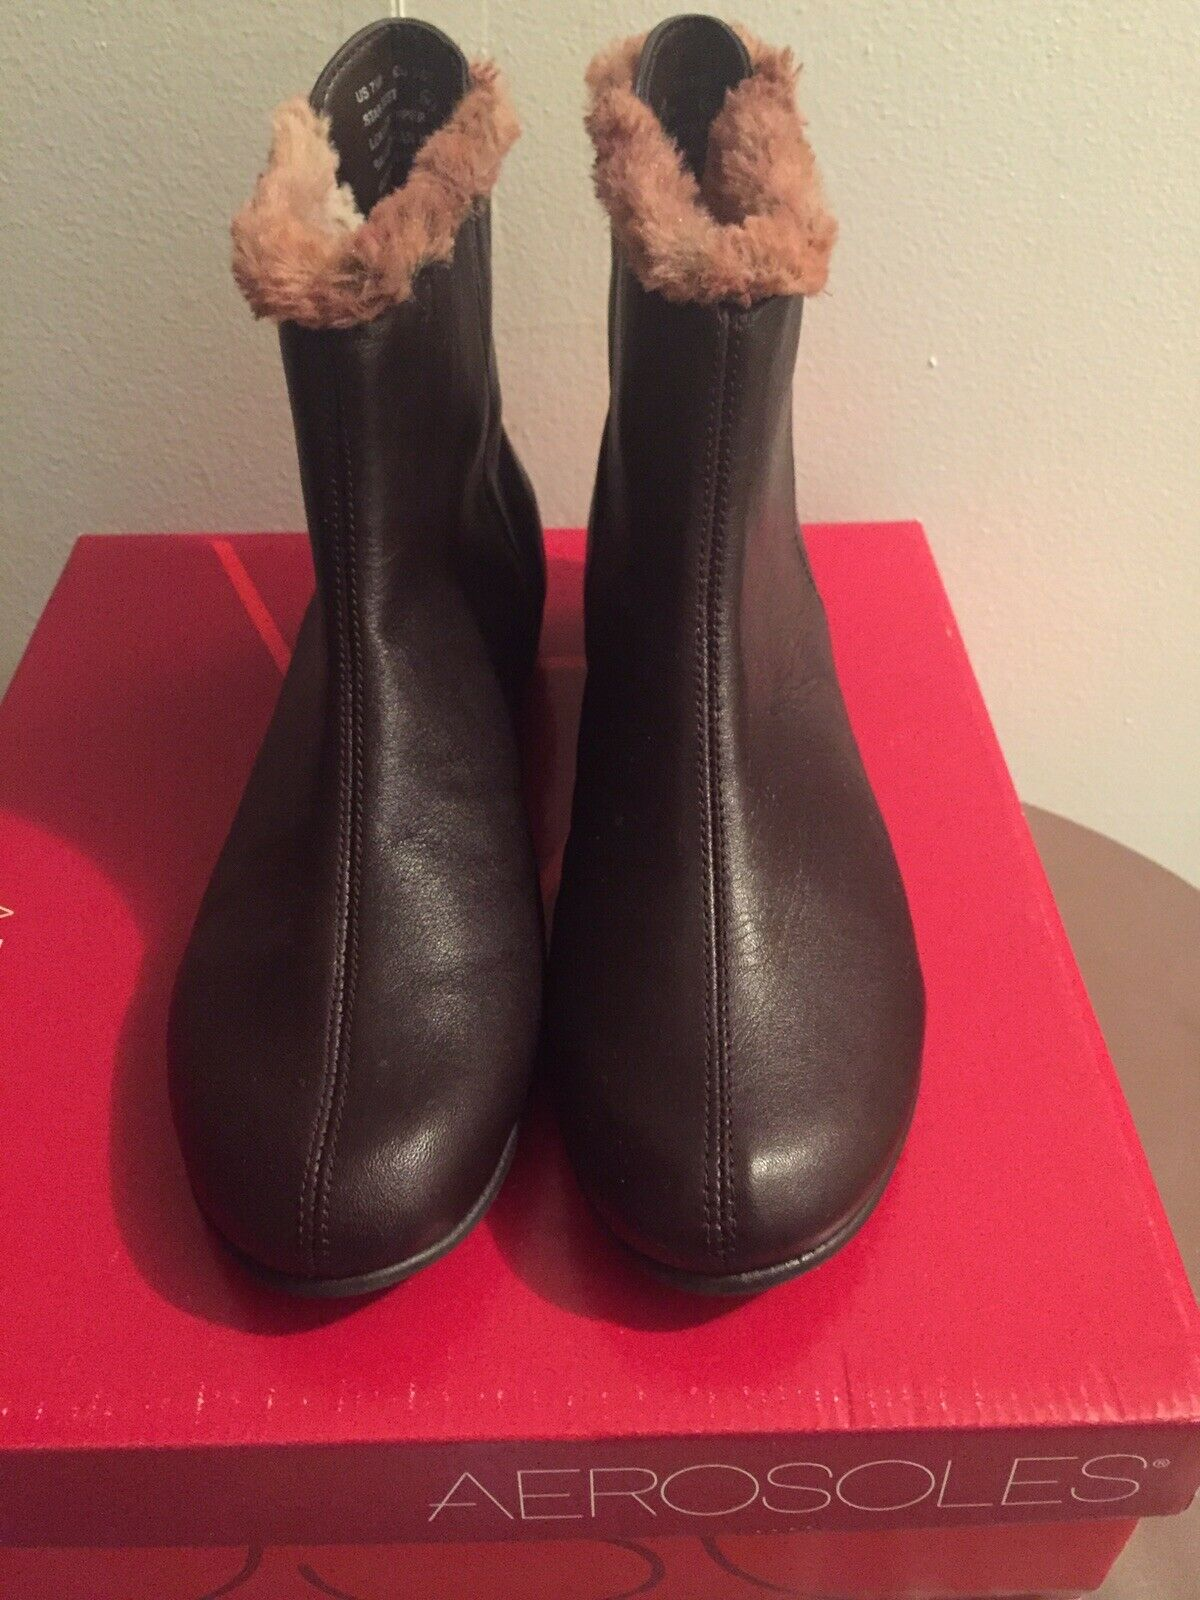 Aerosoles Womens Short Ankle Fur Lined Brown Boots Zip Up Sz 7.5 GREAT CONDITION